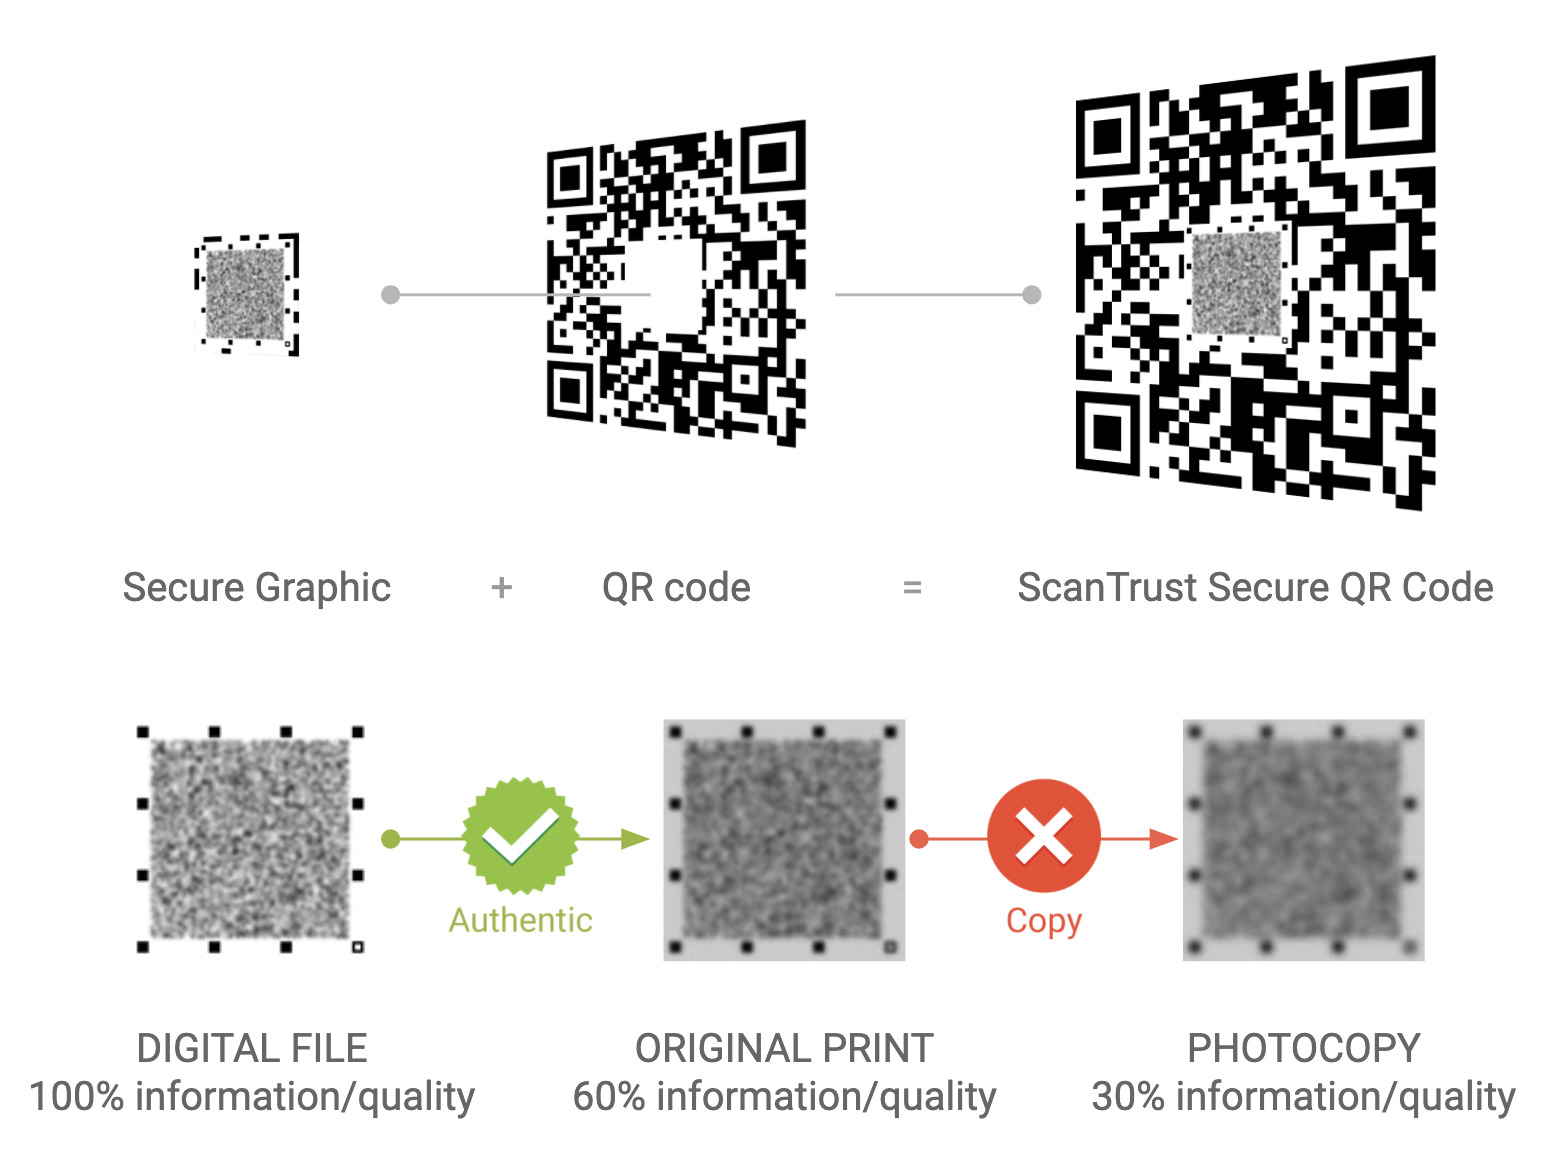 How a secure QR code works